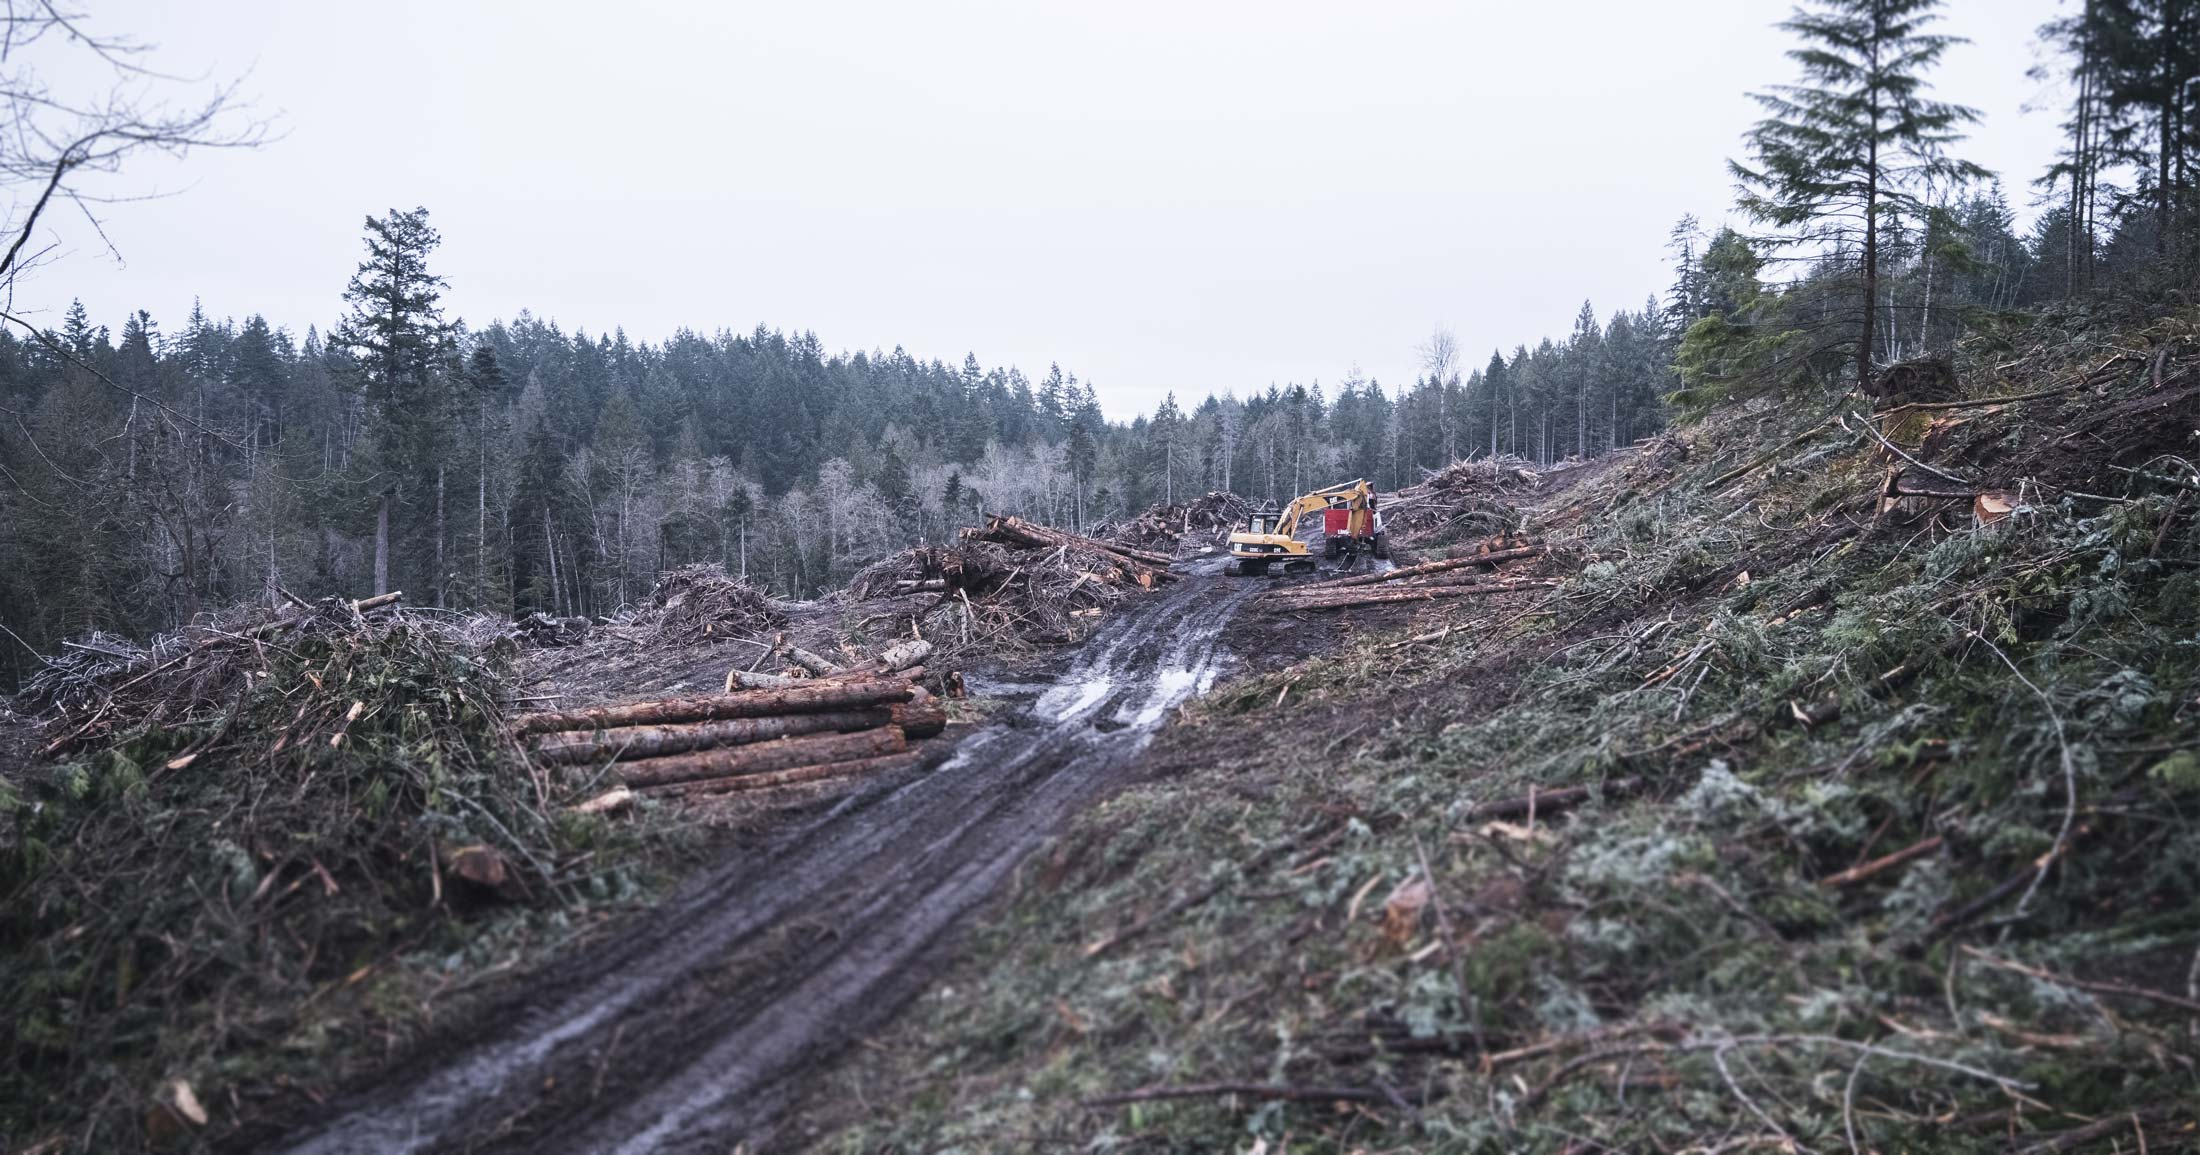 A cutblock covered in cut trees and muddy roads with a large digger on the Gulf Islands.